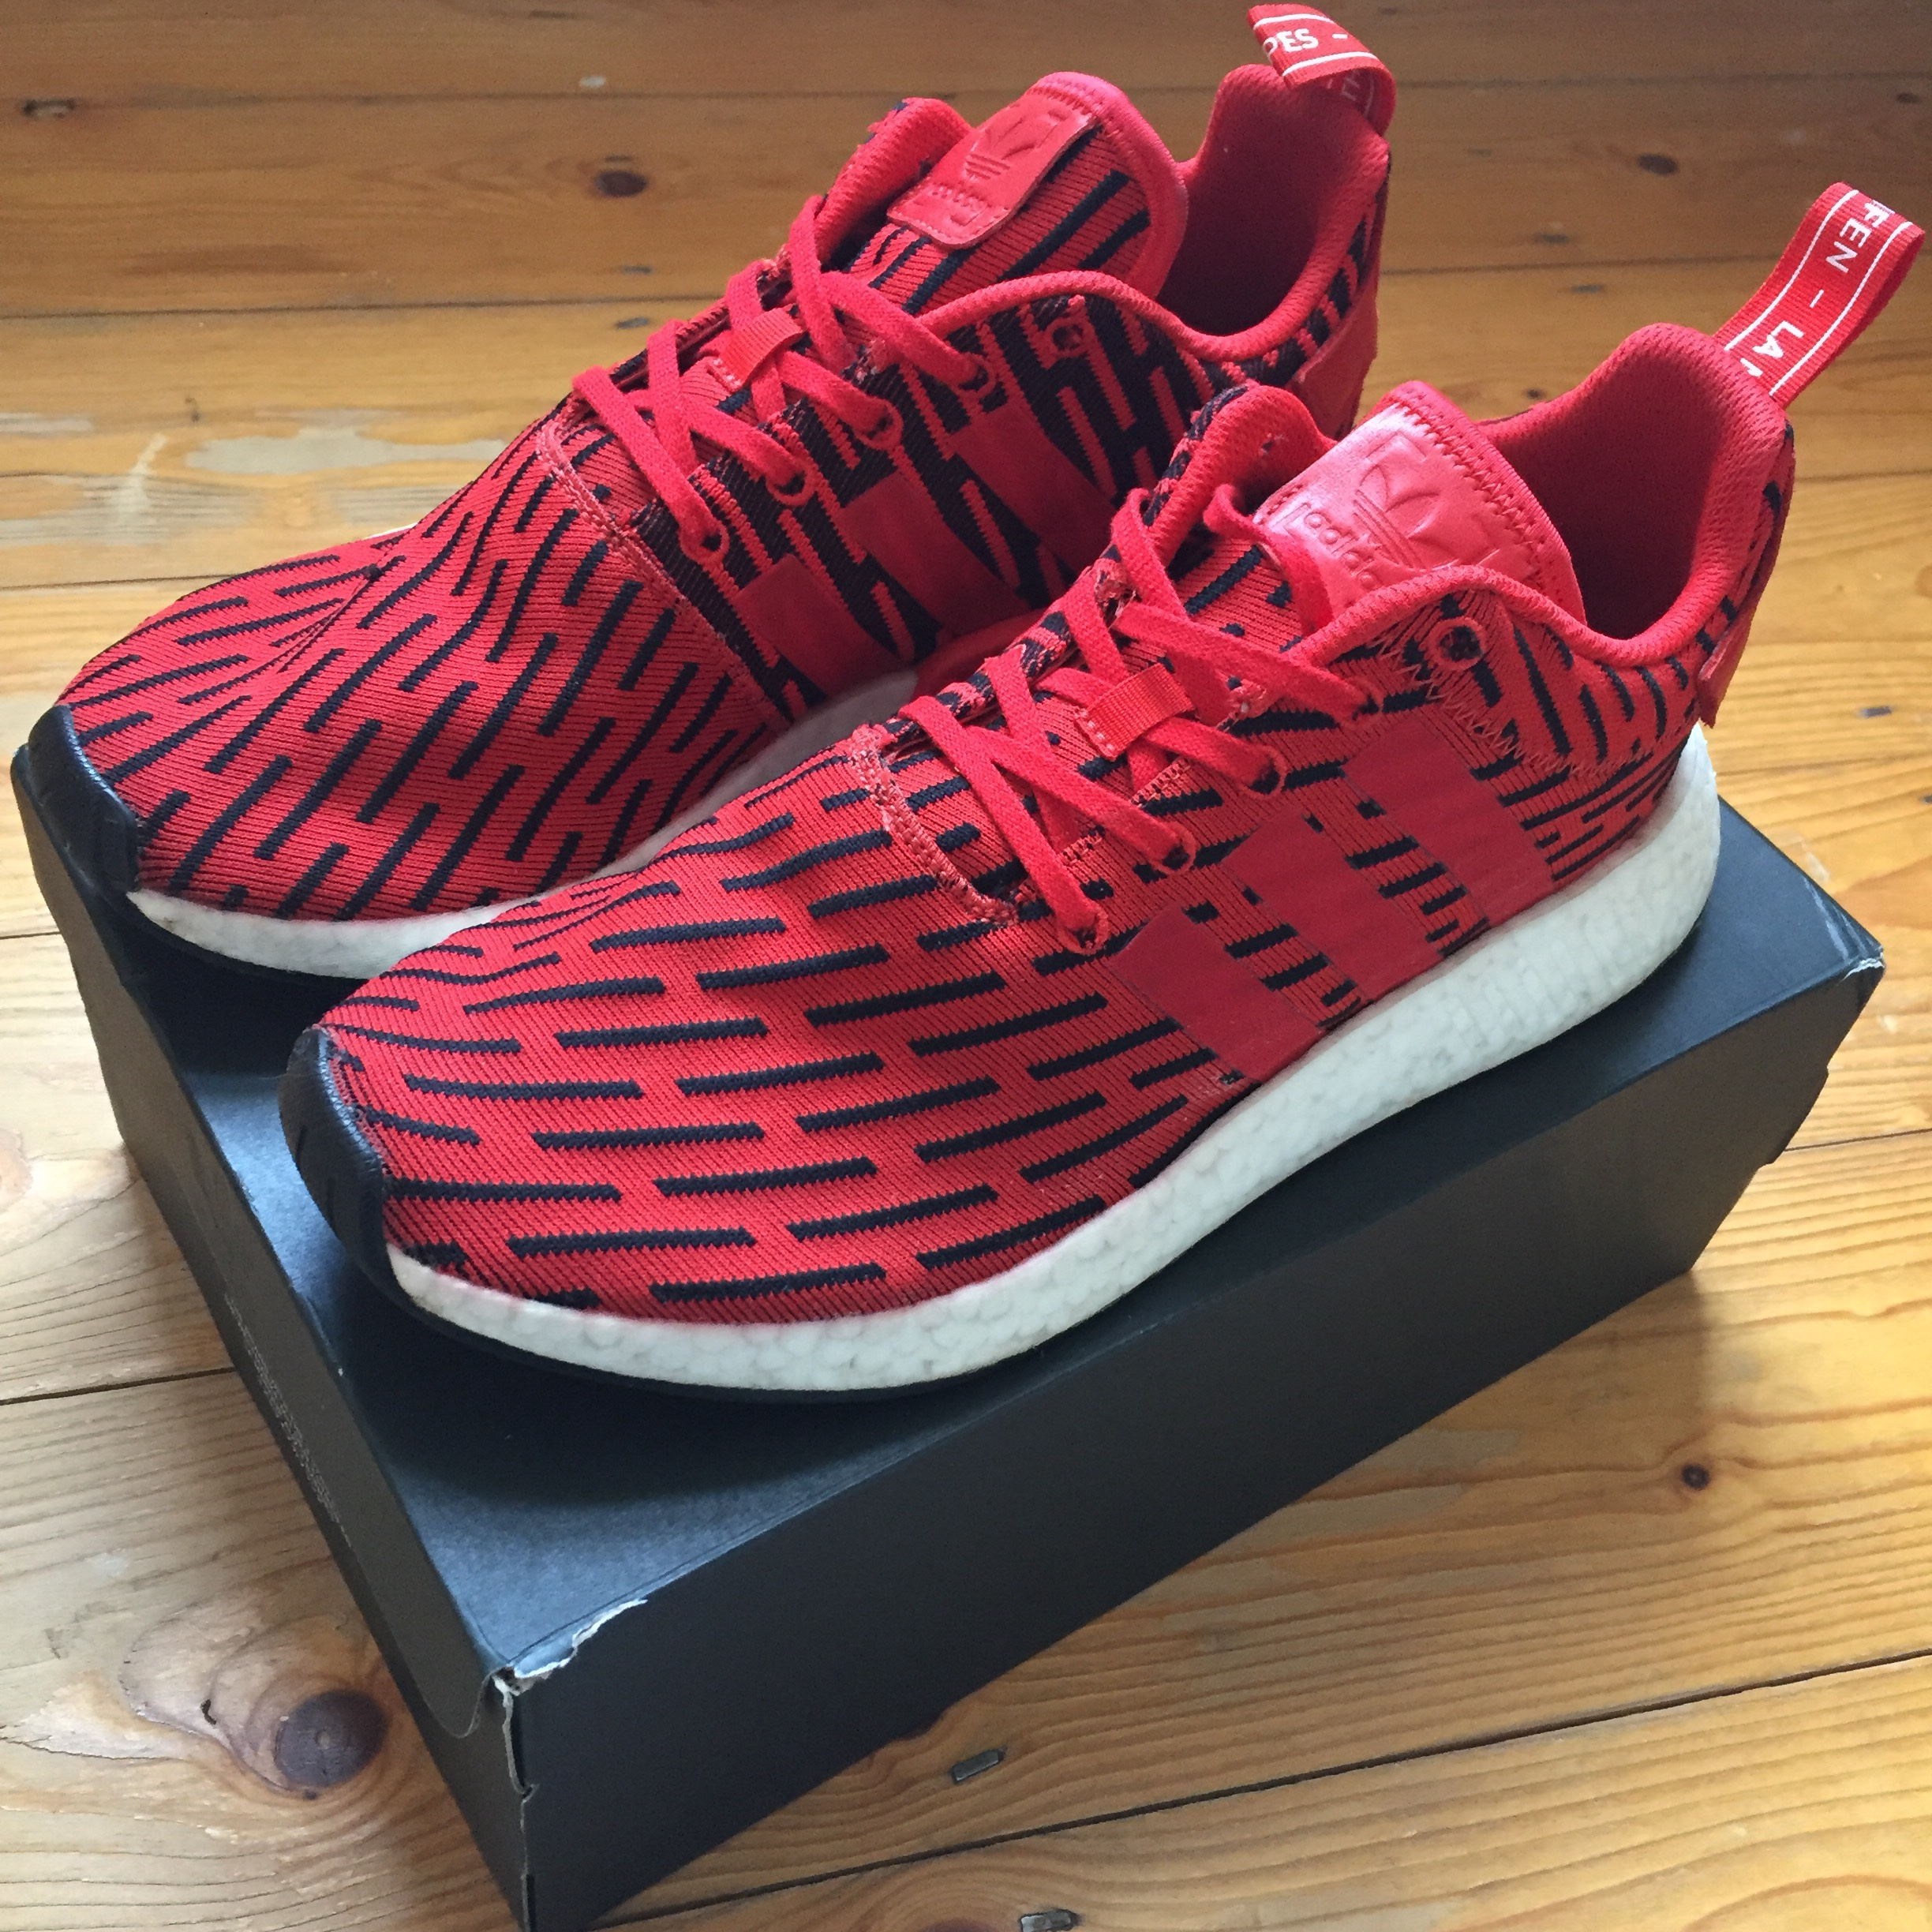 the best attitude 816ca c82f6 Adidas NMD R2 JD Sports Red Black Trainers 🔴⚫️ Used ...